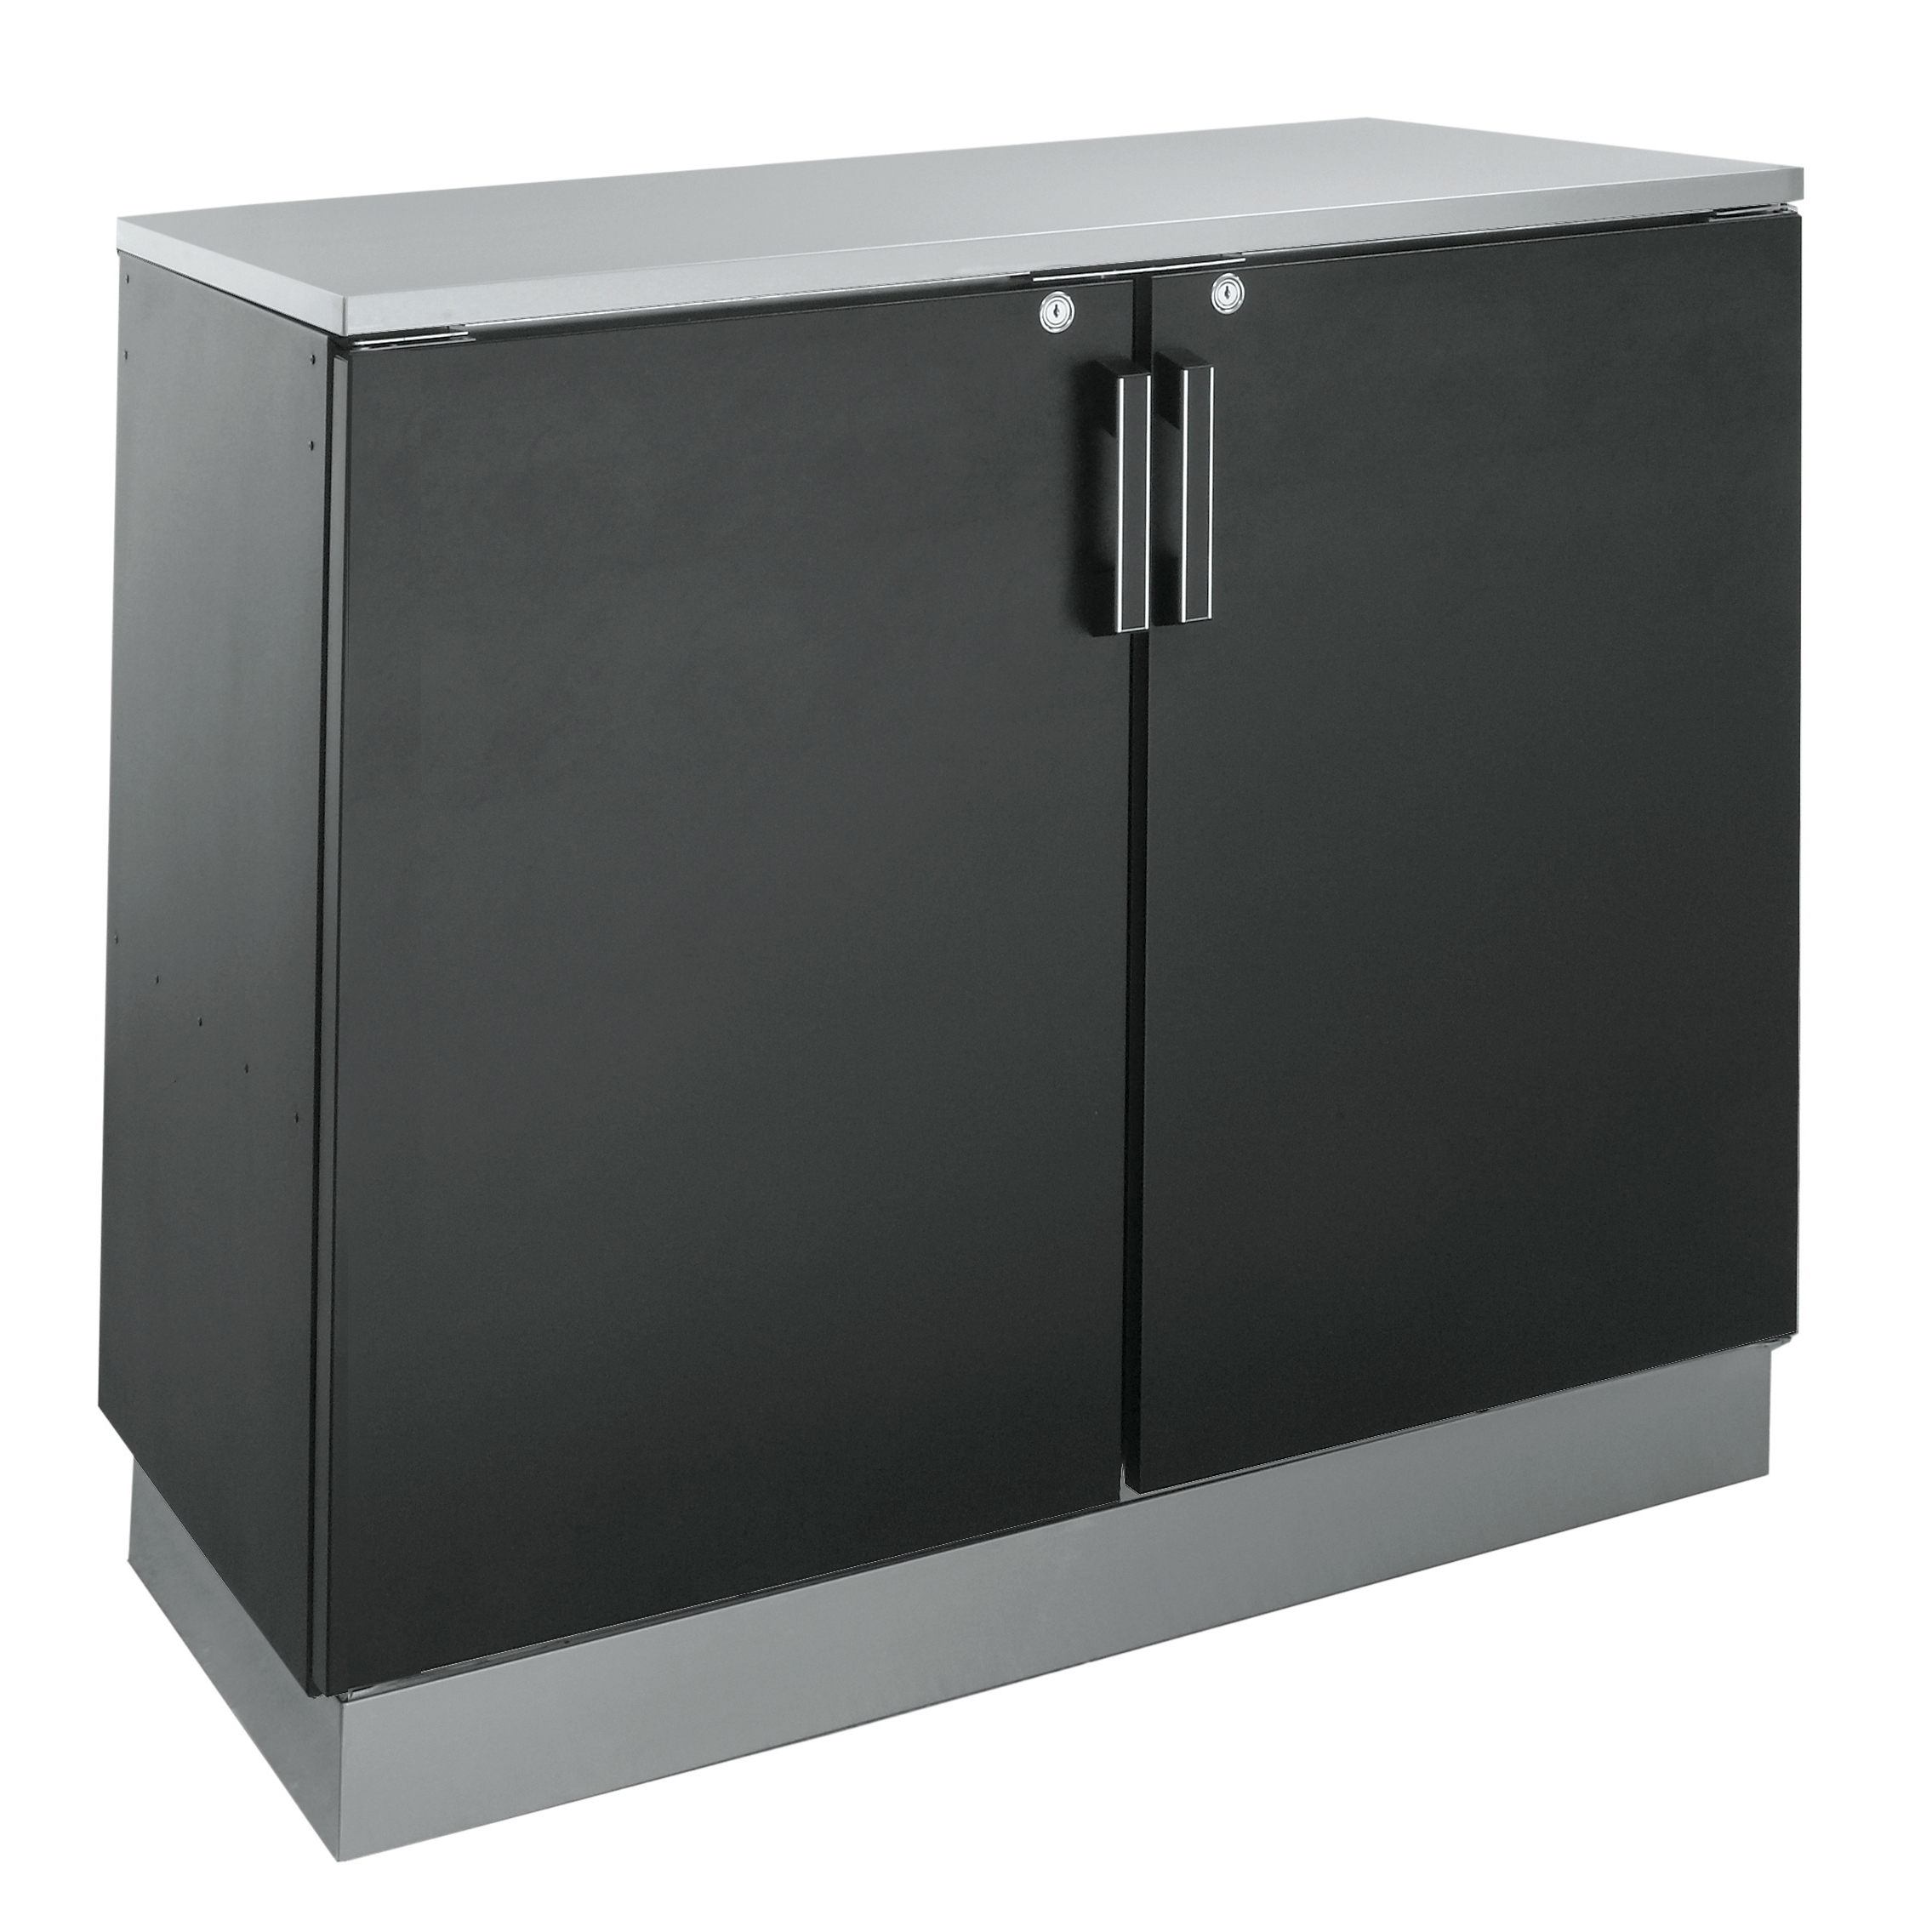 Krowne Metal BD72 back bar cabinet, non-refrigerated